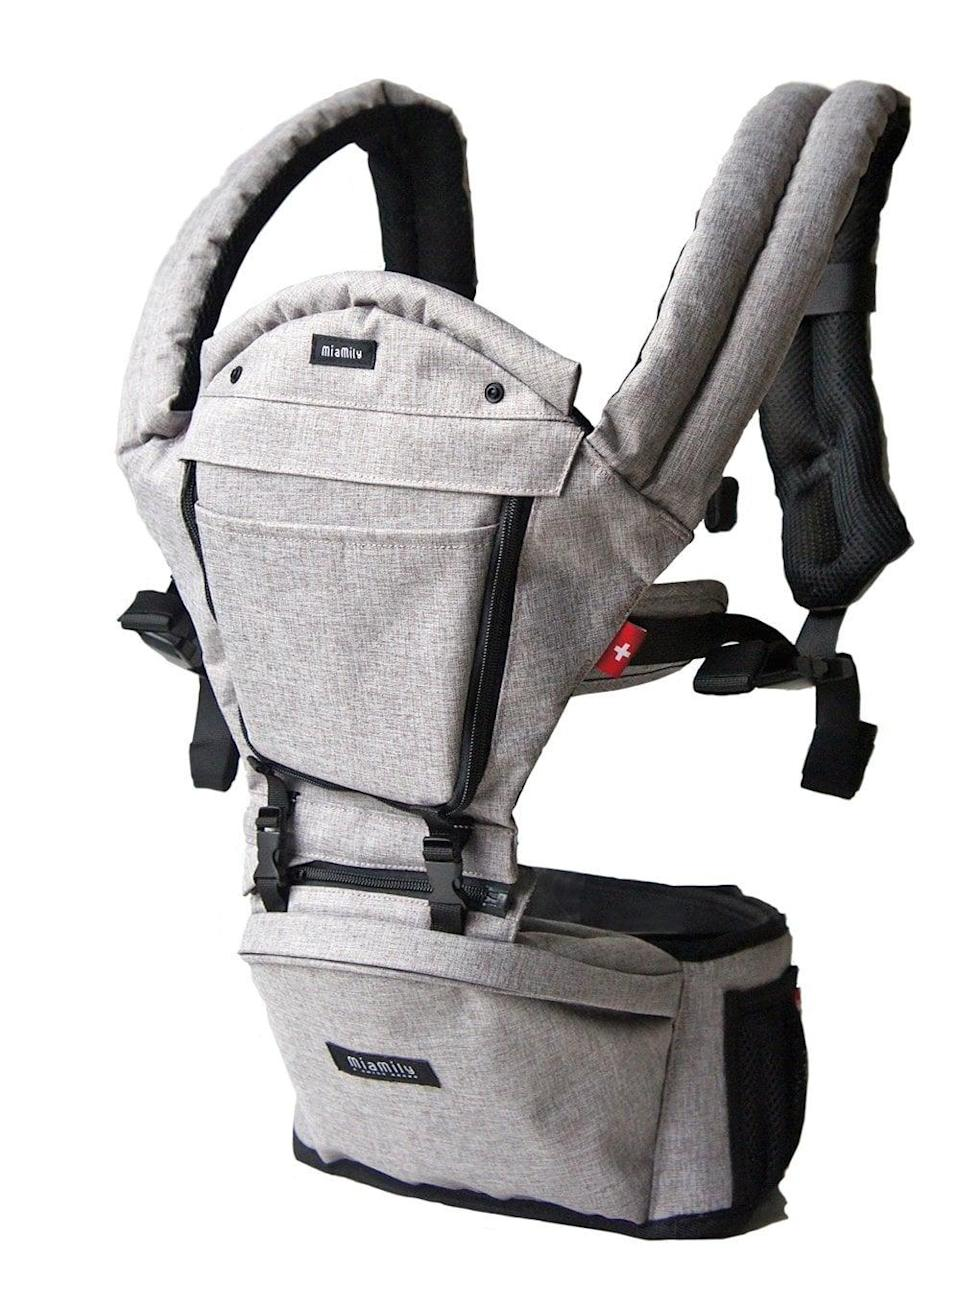 """<p>While there are many types of carriers, the <span>MiaMily Carrier</span> ($128) has a built-in ergonomic hip seat, a hidden storage pocket, and a seat for your baby to sit on, which helps redistribute weight. This <a href=""""https://www.popsugar.com/family/MiaMily-Baby-Carrier-Review-45067803"""" class=""""link rapid-noclick-resp"""" rel=""""nofollow noopener"""" target=""""_blank"""" data-ylk=""""slk:carrier is perfect for parents who want more support and storage"""">carrier is perfect for parents who want more support and storage</a>. </p>"""